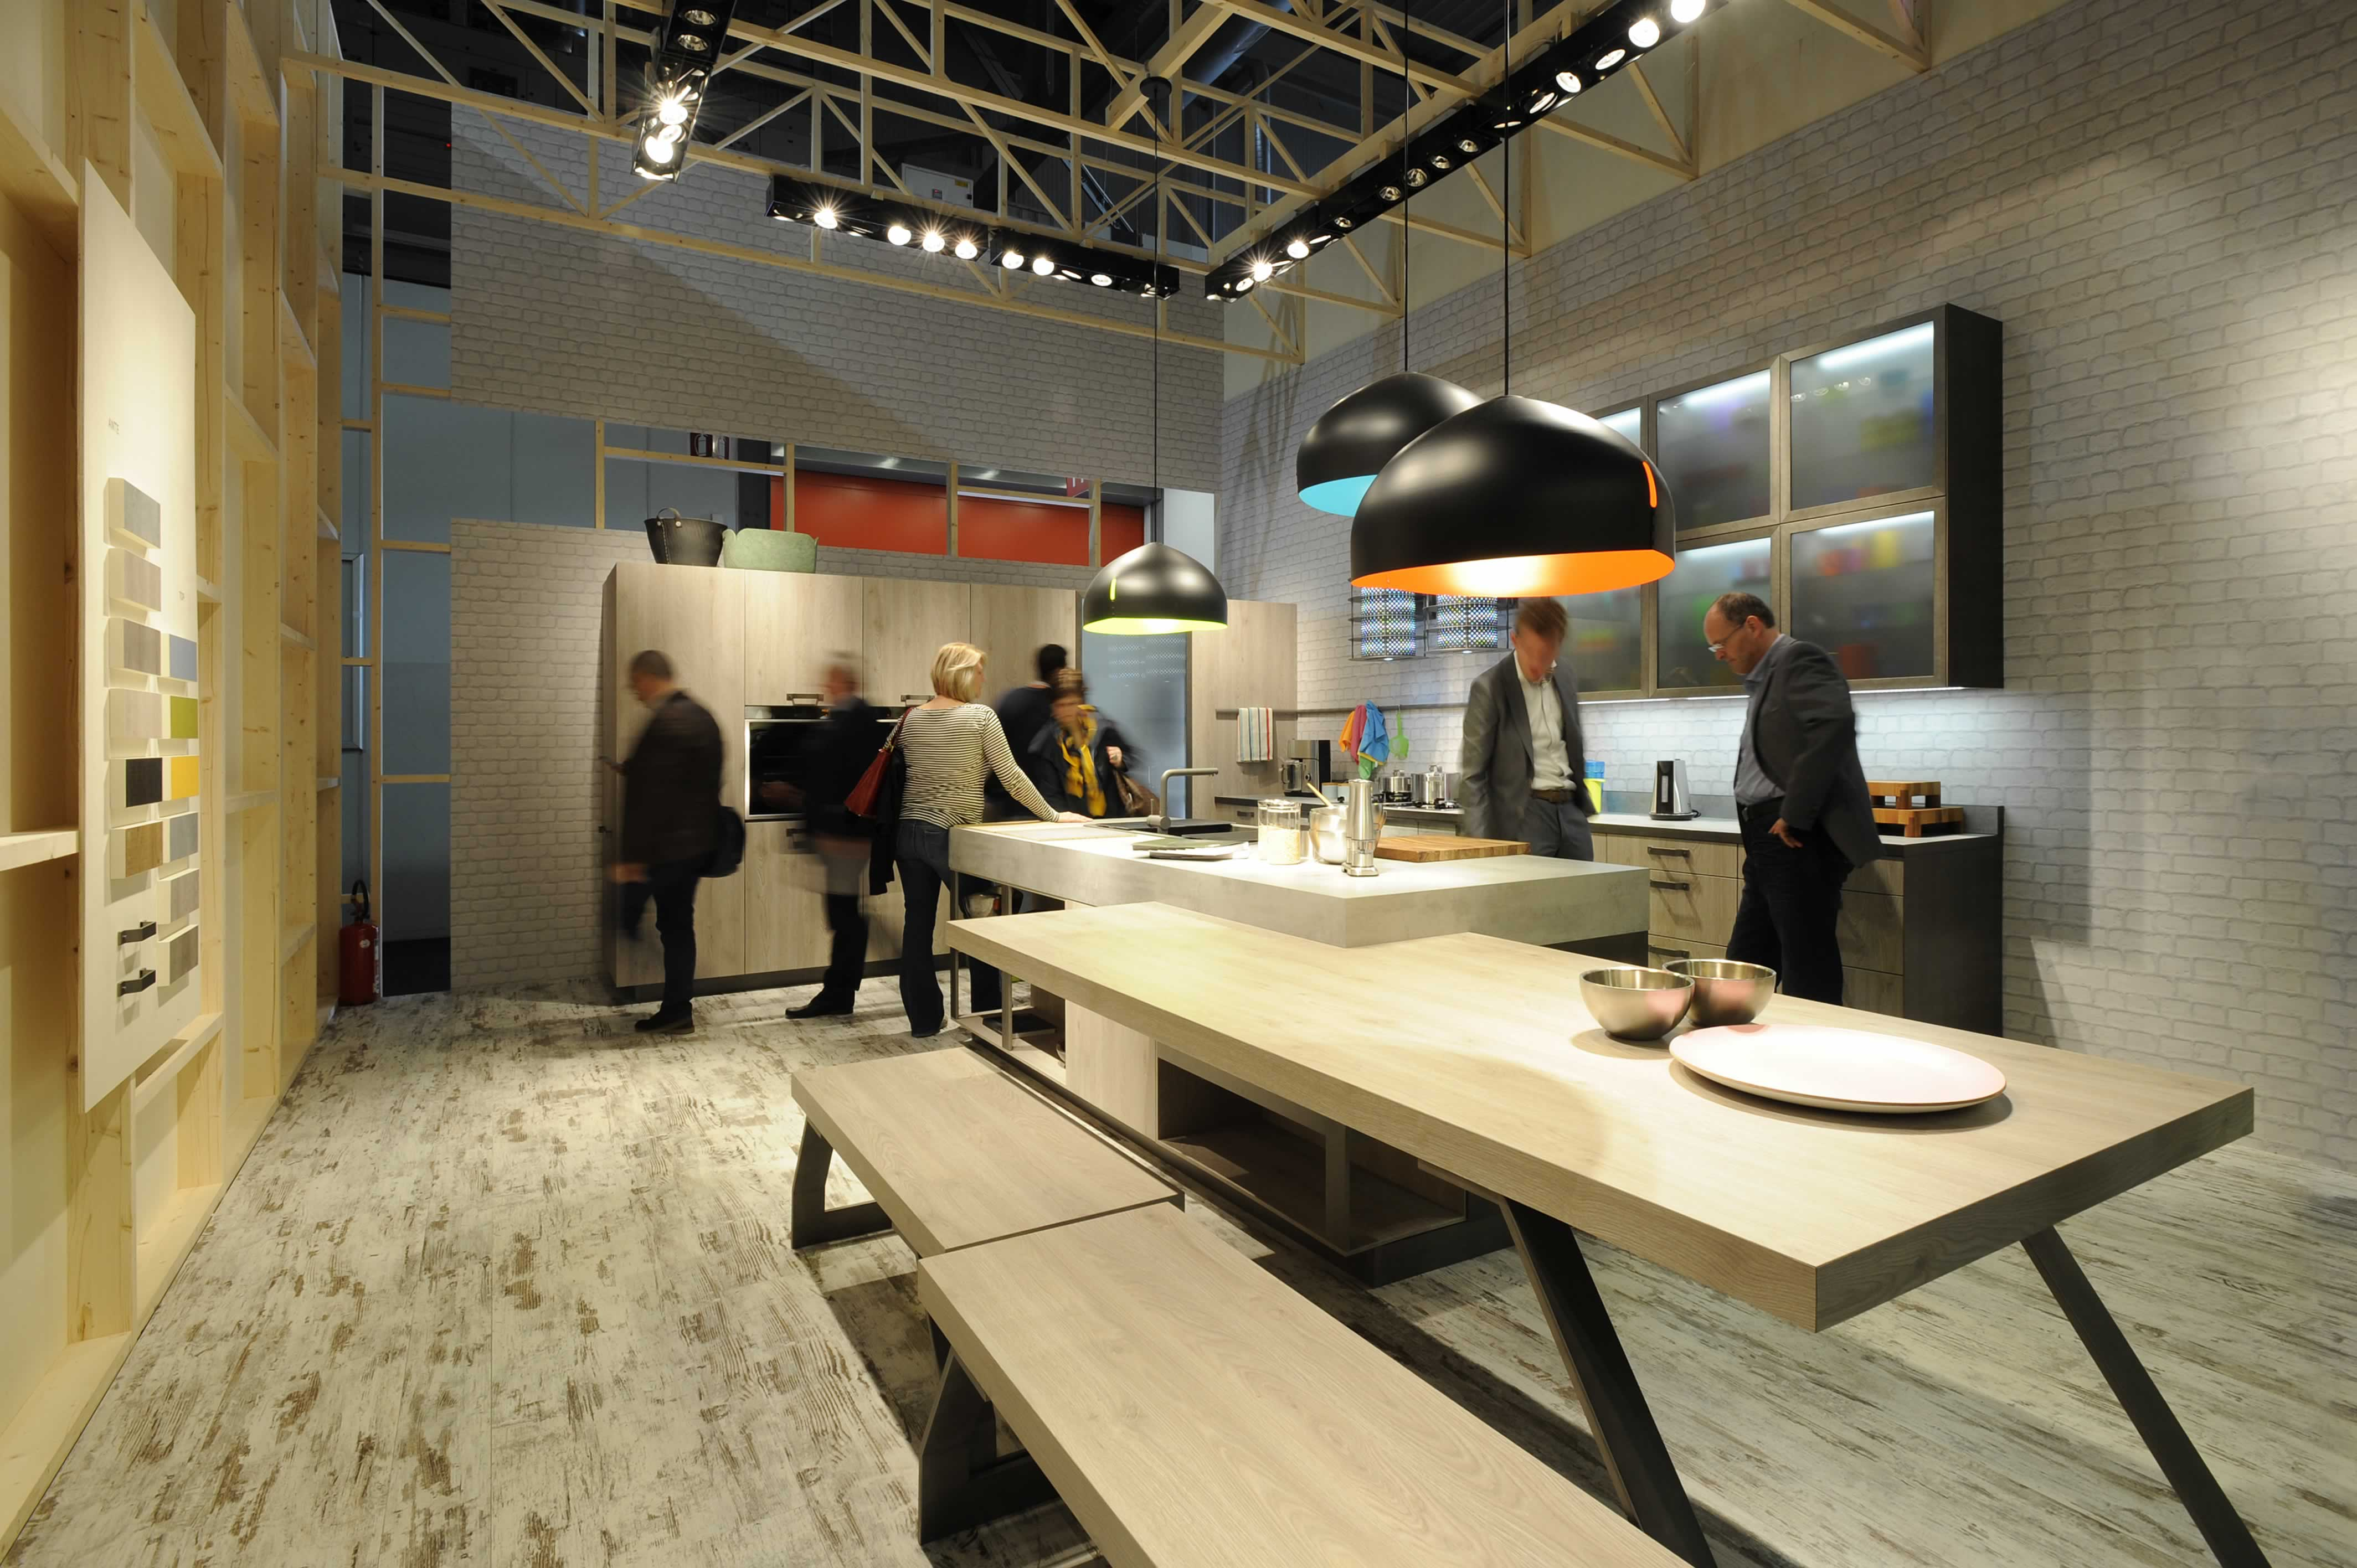 eurocucina_photo-by-cm_016_13778337855_o